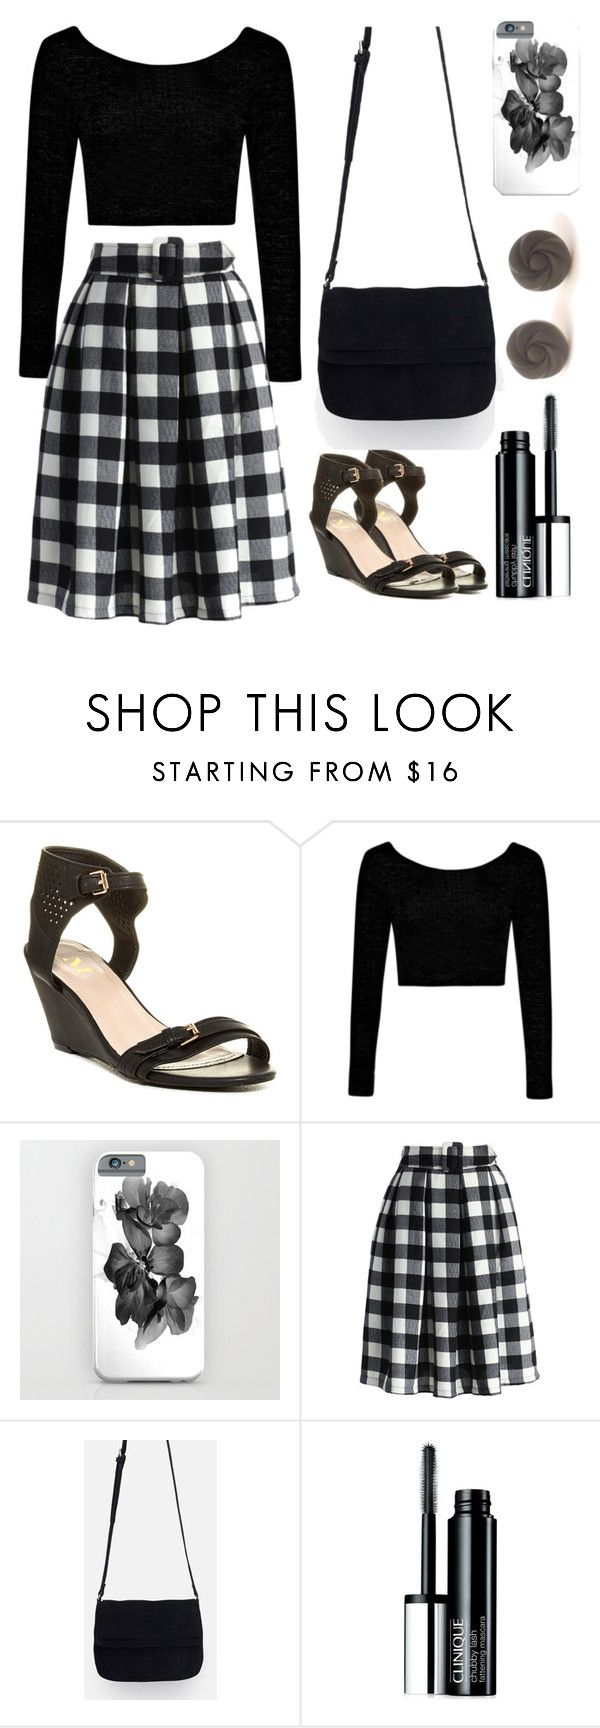 midi skirt in tartan by by-jwp on Polyvore featuring Boohoo, Chicwish, Modern Rush, Zara, Retrò and Clinique